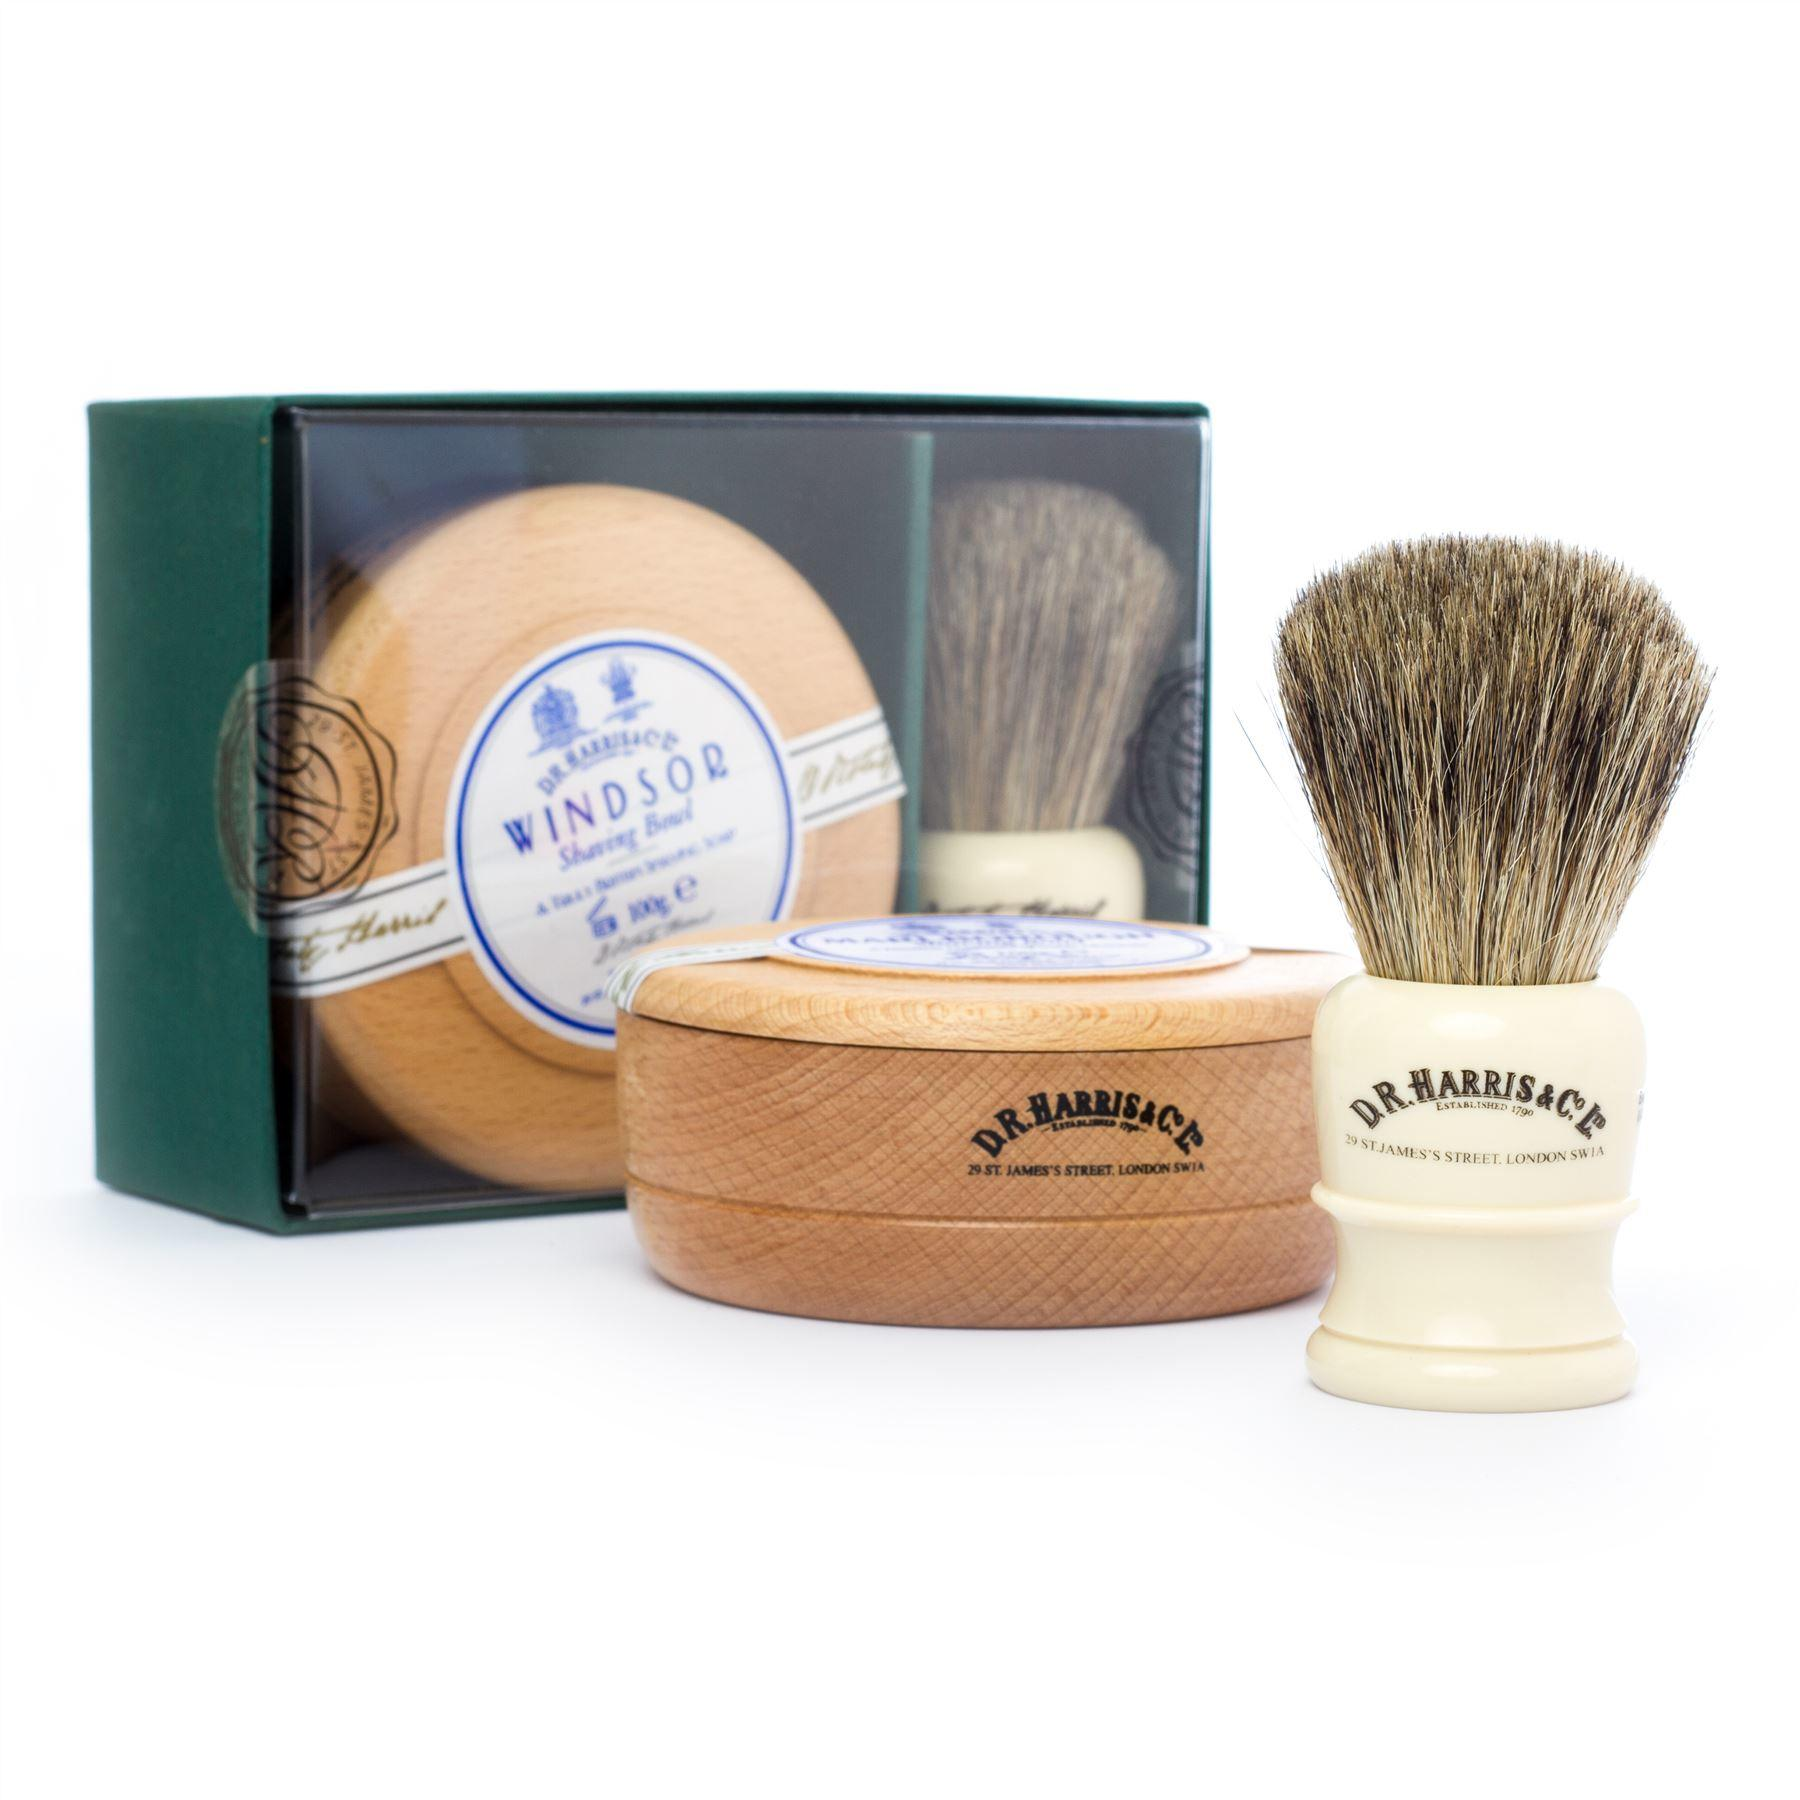 DR Harris & Co Faux Ivory Shaving Brush, Beech Bowl & Windsor Shave Soap Gift Set